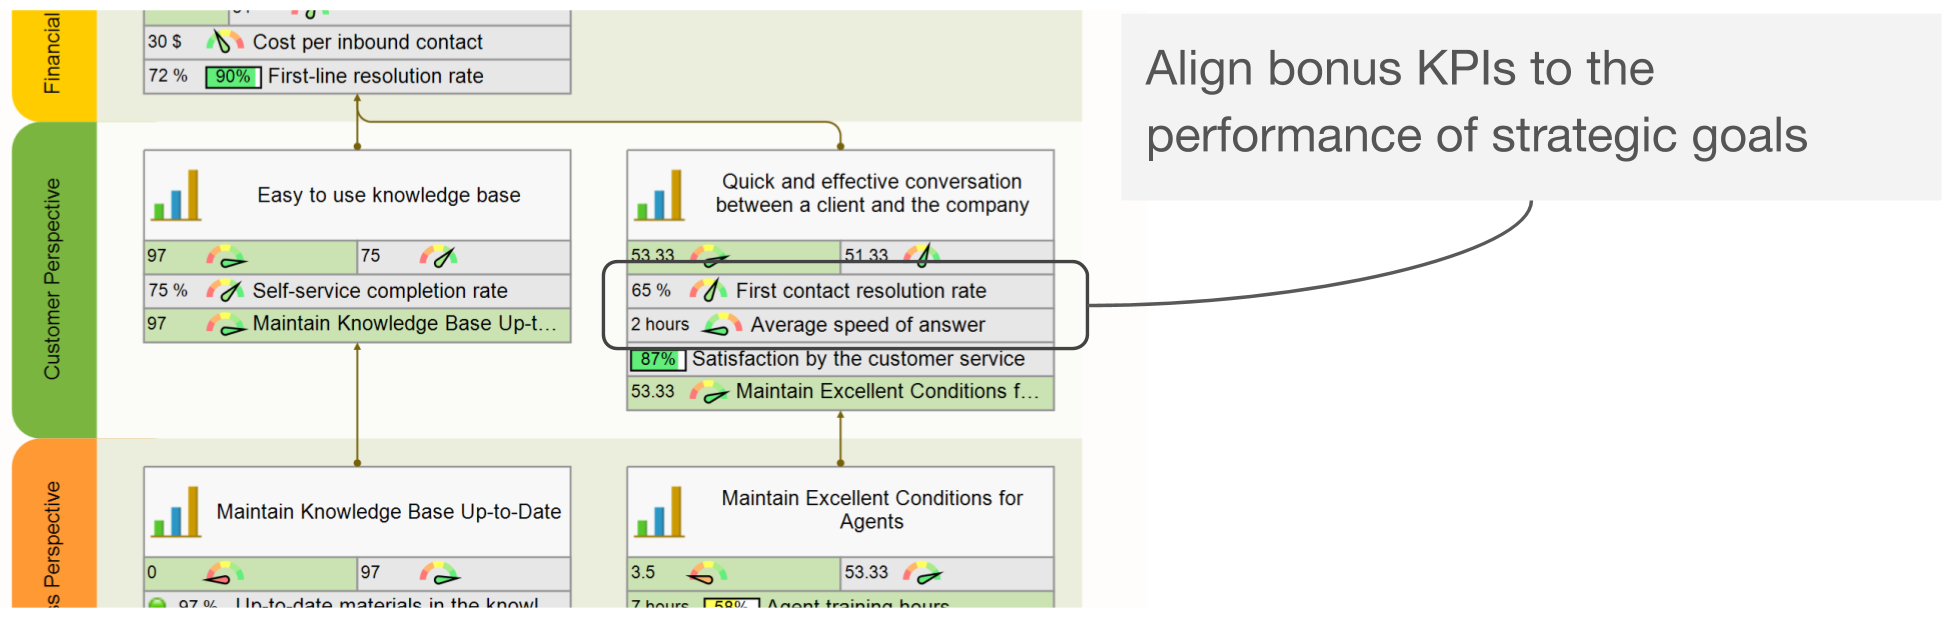 Align bonus with strategic goals